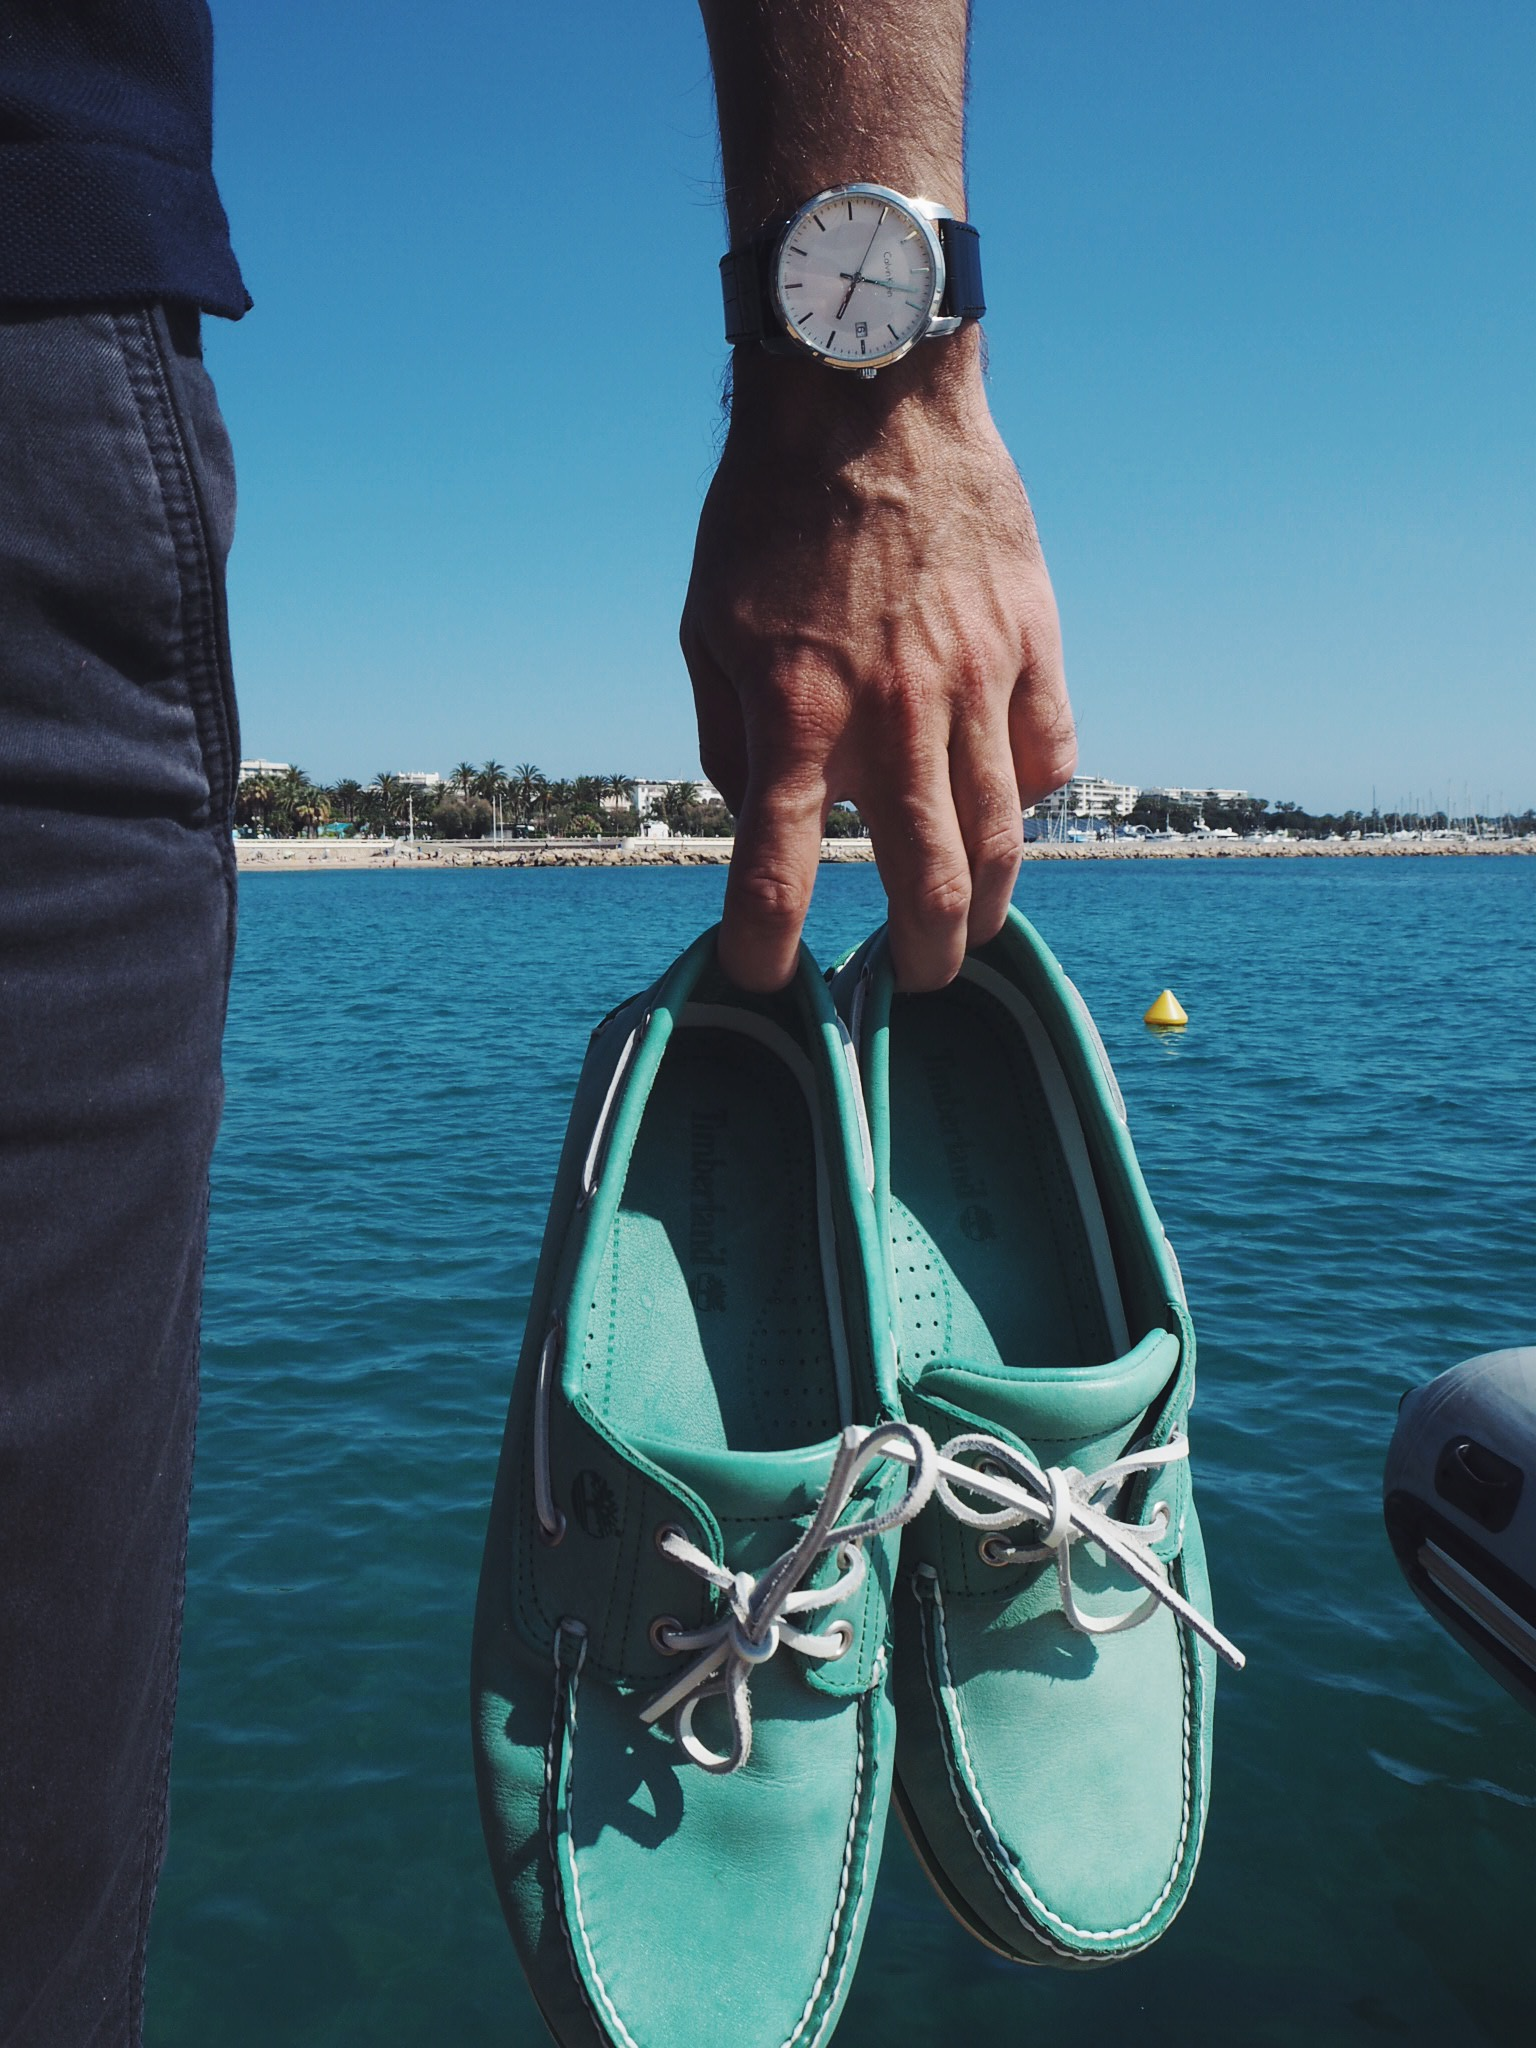 _ilcarritzi_timberland_cannes_saling_boat_dock_shoes_french_riviera_cote_d_azur_calvin_klein_watch_